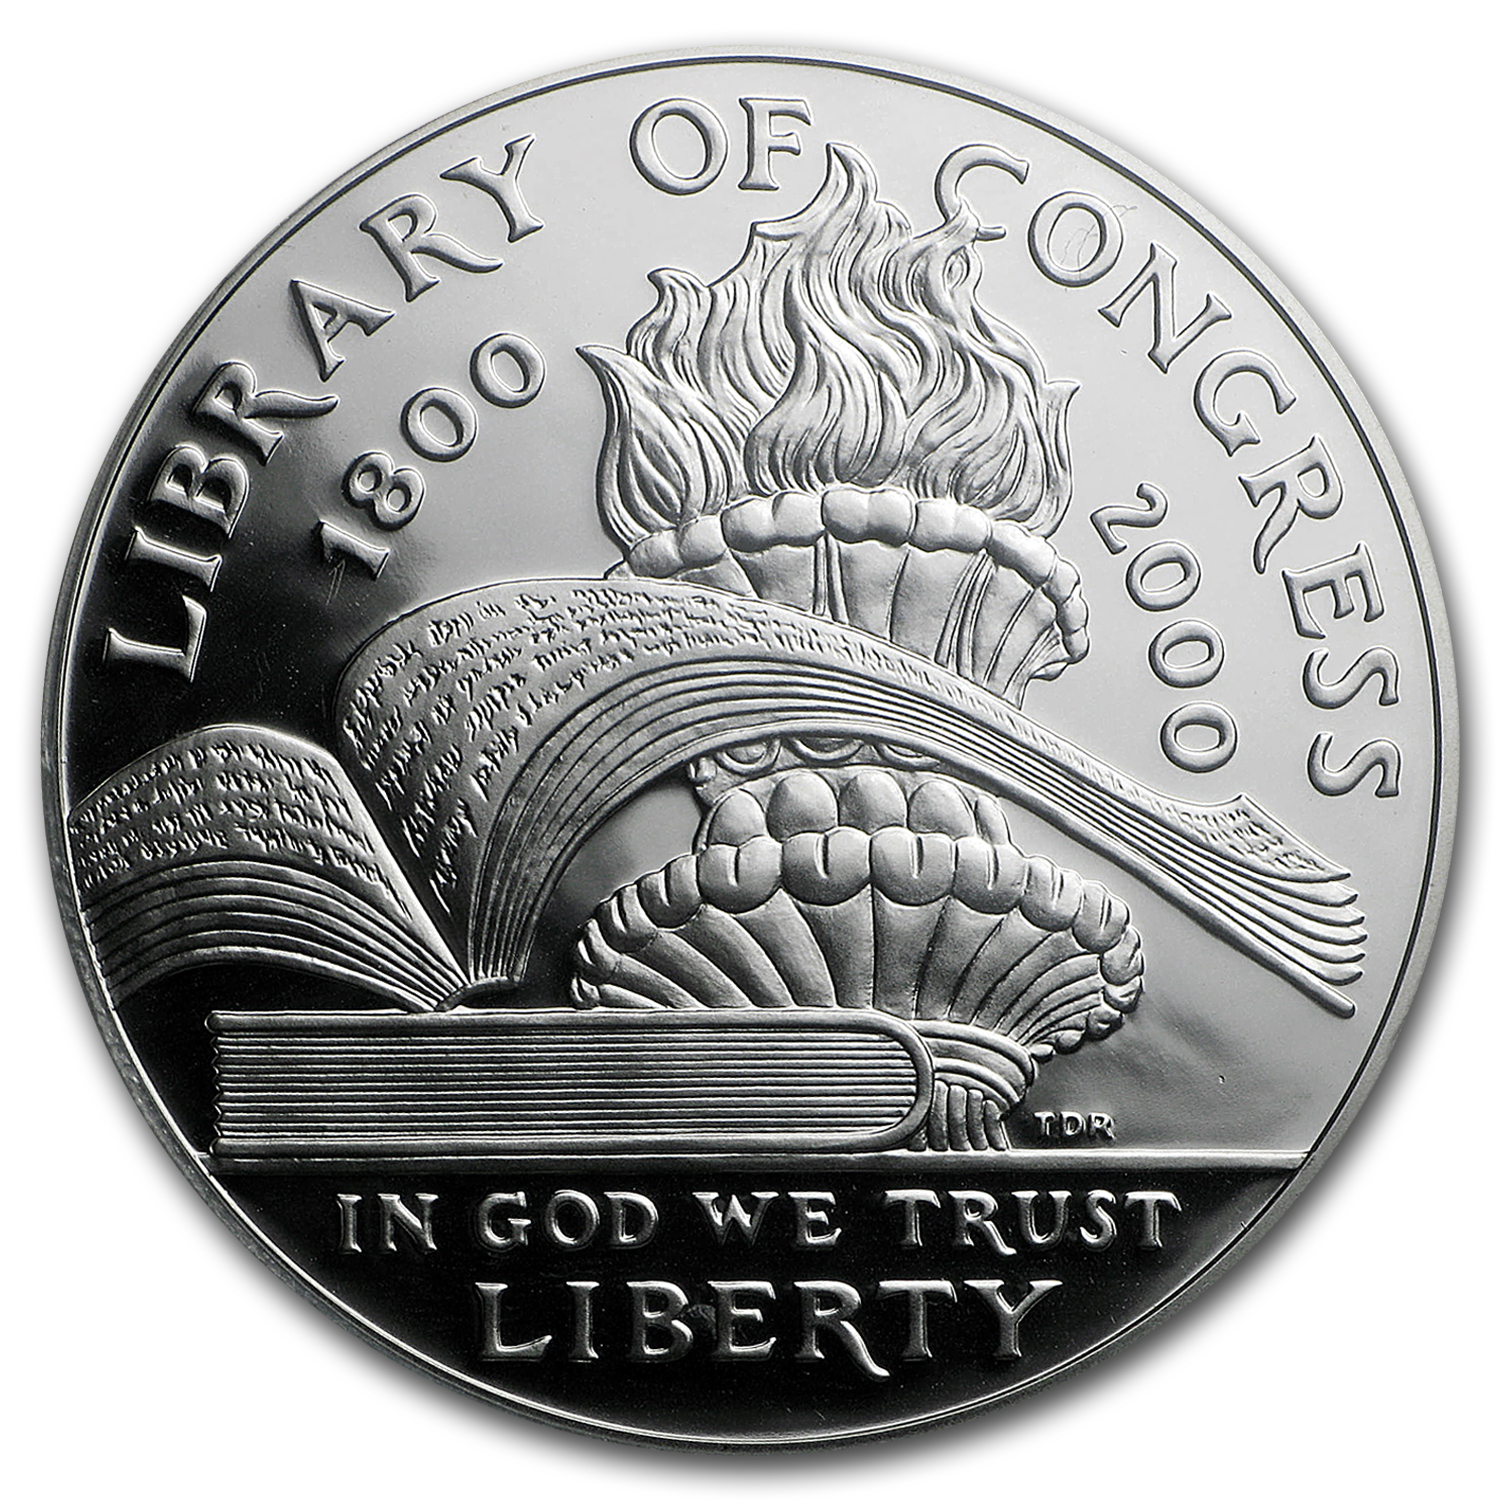 2000-P Library of Congress $1 Silver Commem PR-70 DCAM PCGS